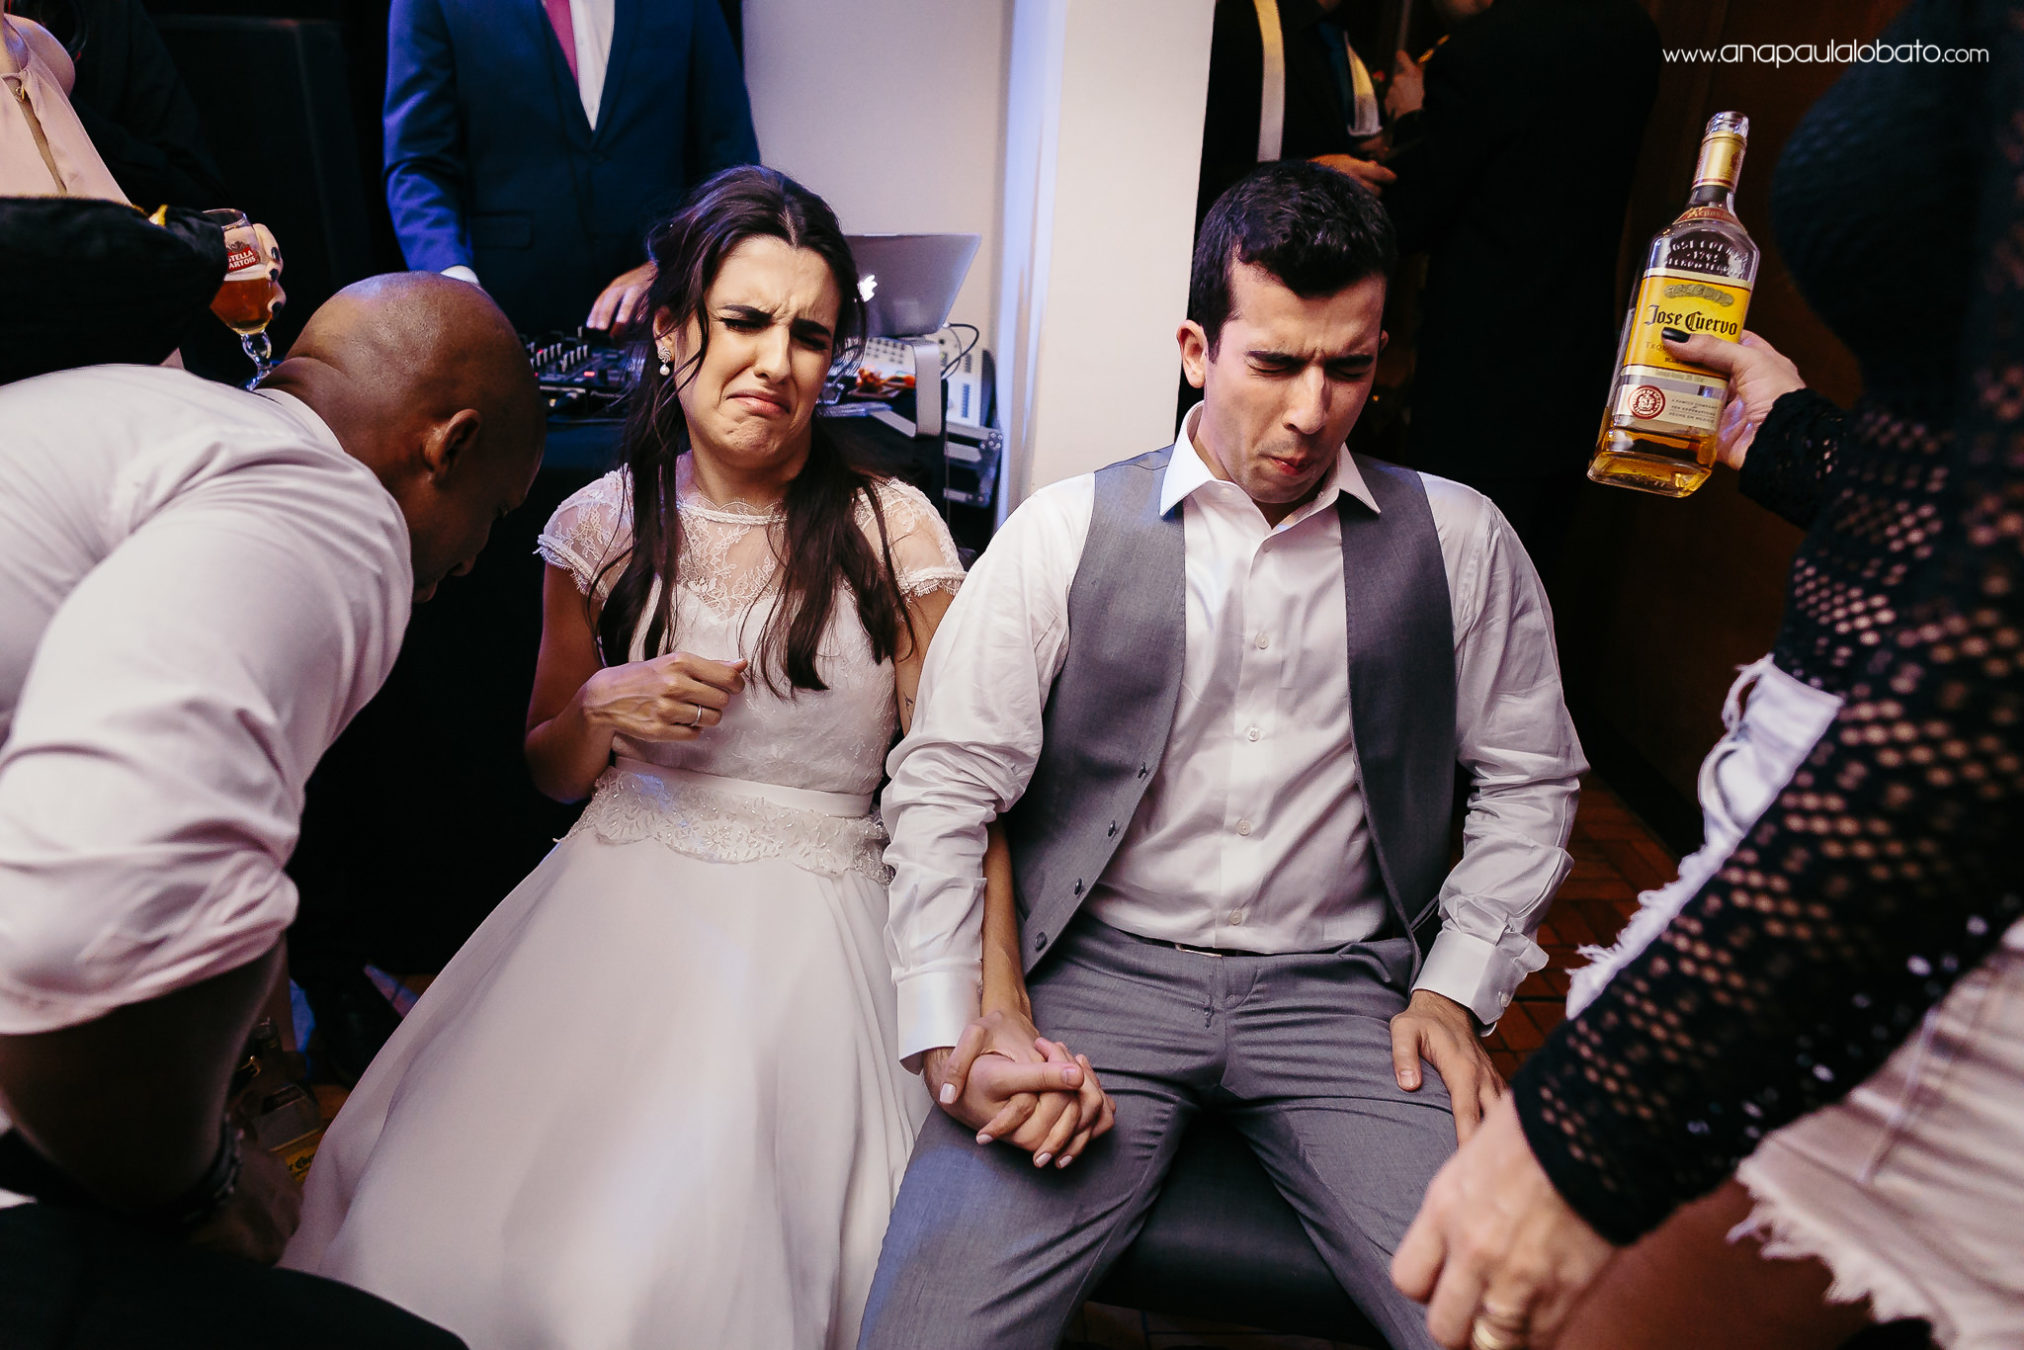 Wedding couple drinks tequila and makes a funny face